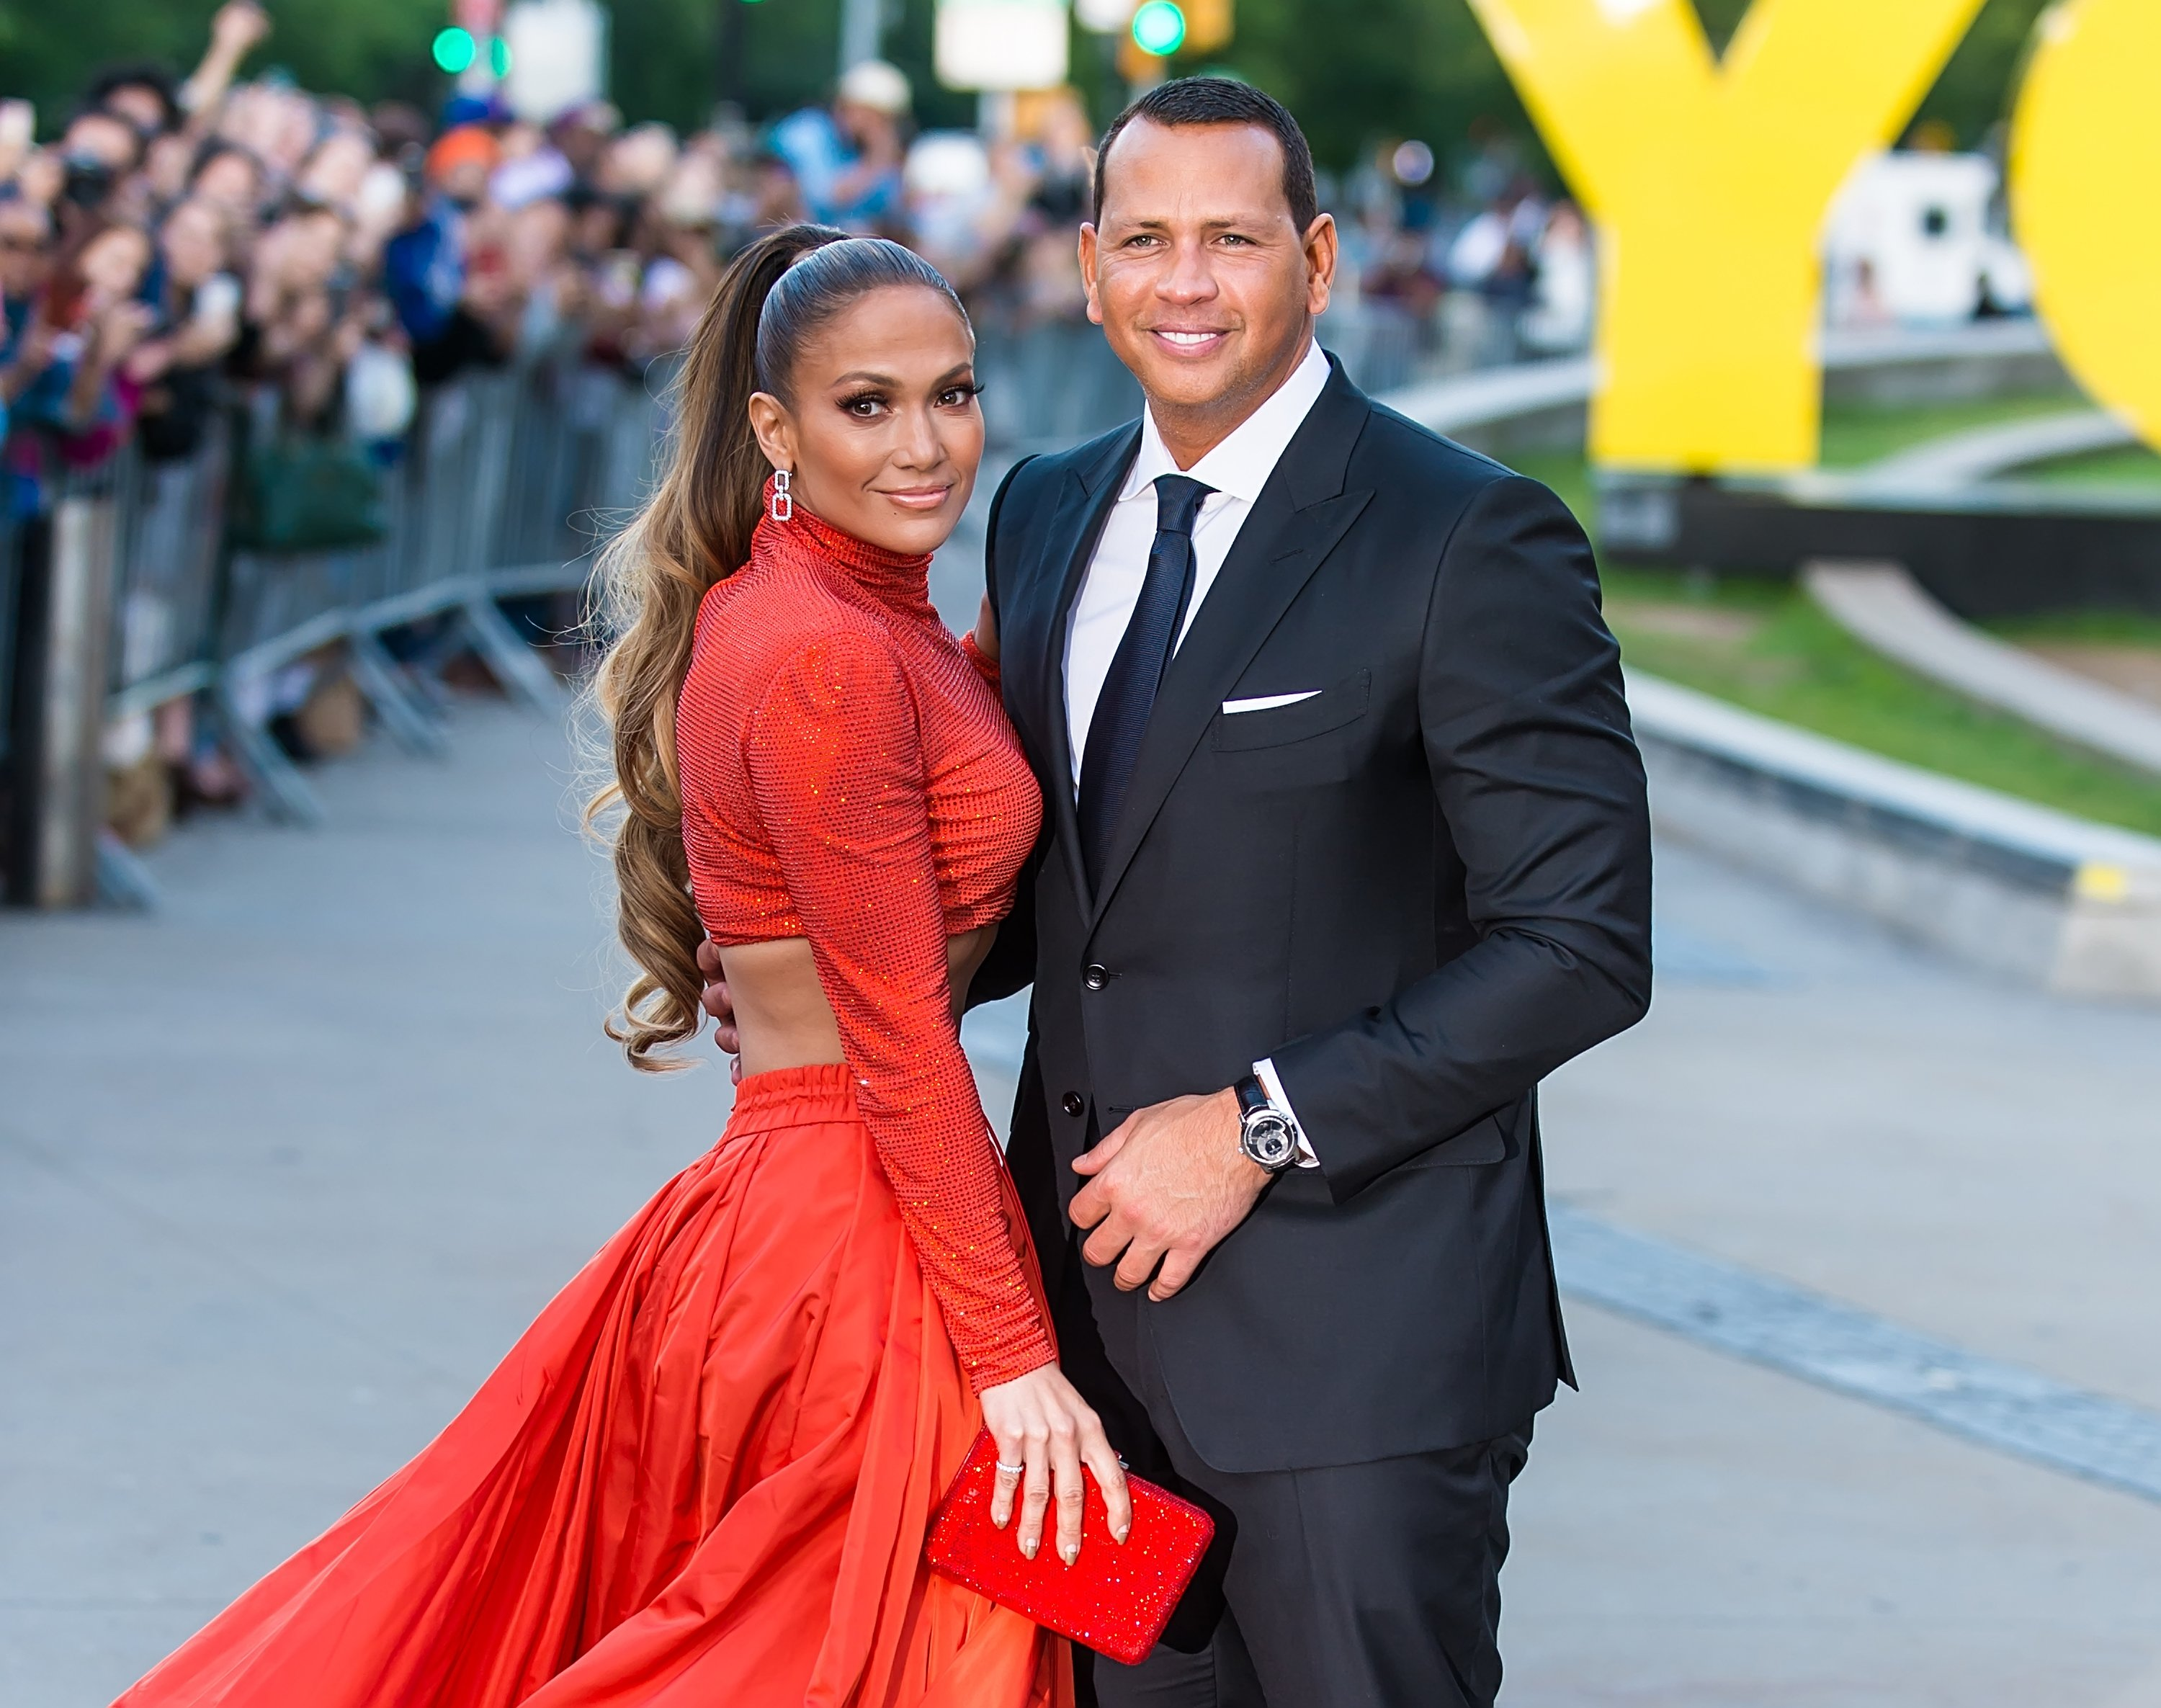 Jennifer Lopez and Alex Rodriguez pictured at the 2019 CFDA Fashion Awards. | Photo: Getty Images